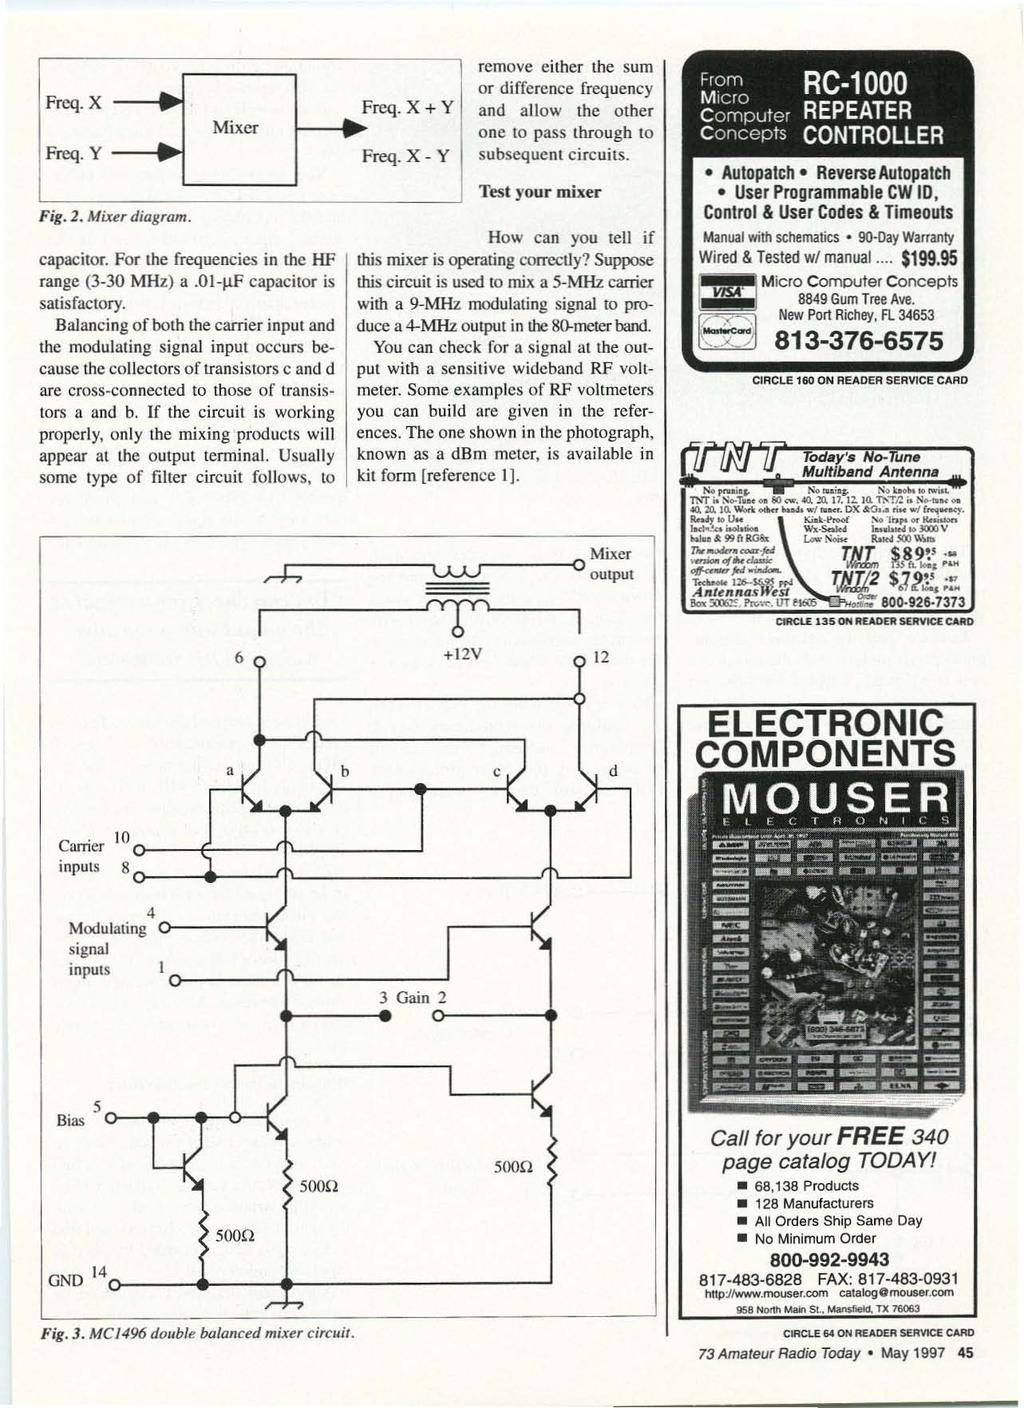 Sz Access All Your Favorite Closed Repeat Ers With To S Ctcss 348 Conventional Models Basic 12 Volt Wiring Diagram Schematic Ebay Frcqx Frcq X Y Mixer